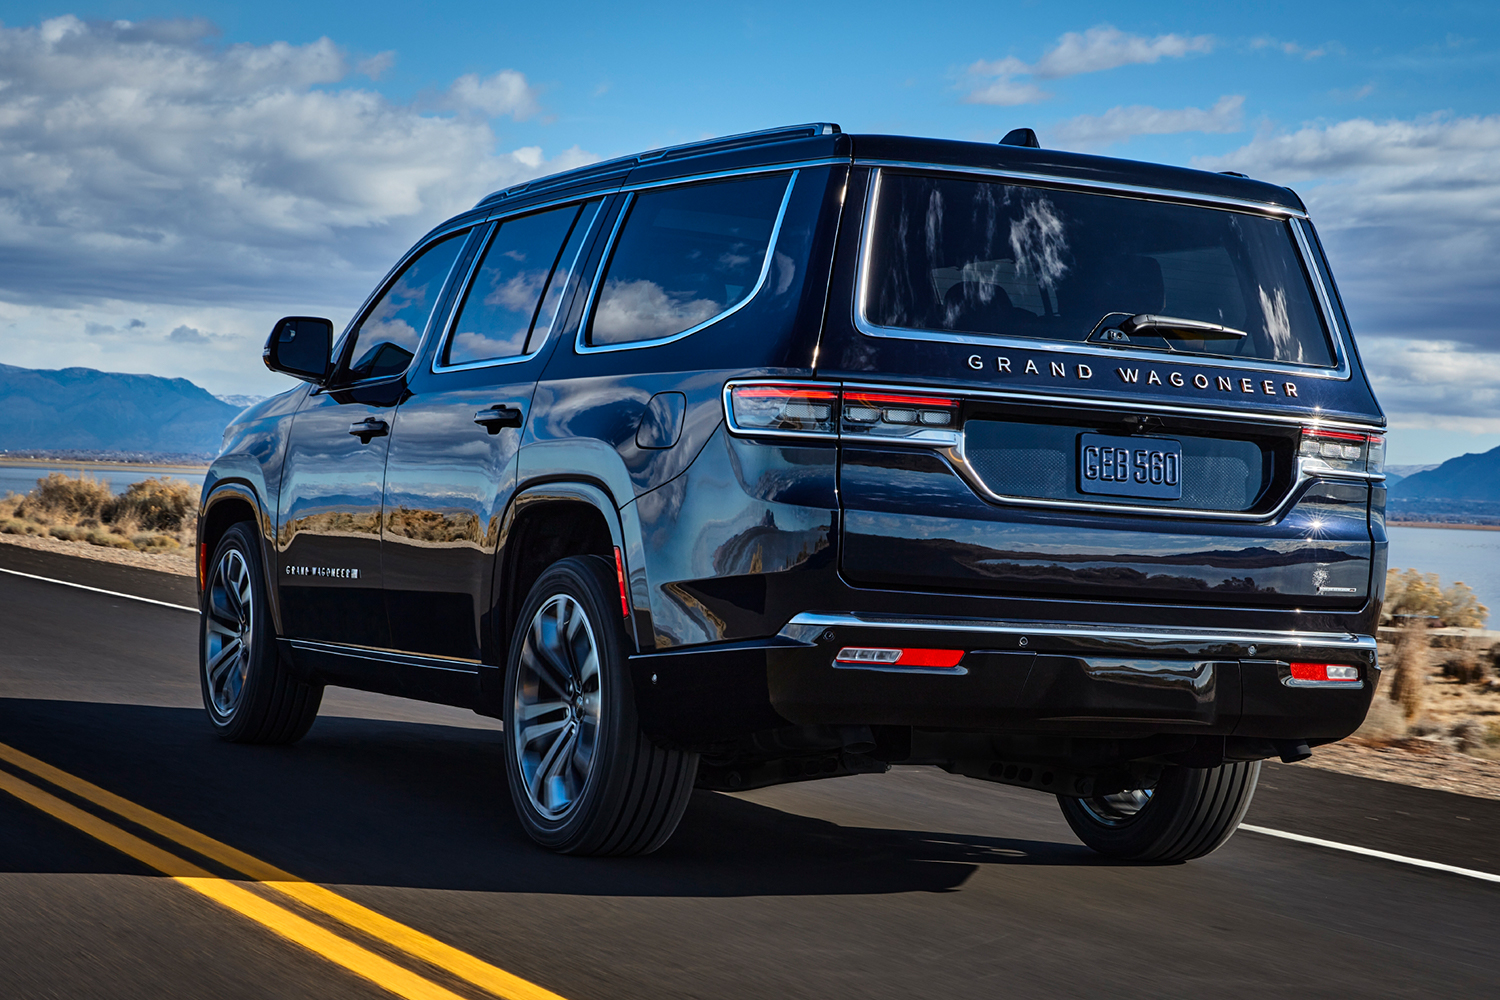 The 2022 Jeep Grand Wagoneer driving down the road shot from the rear left